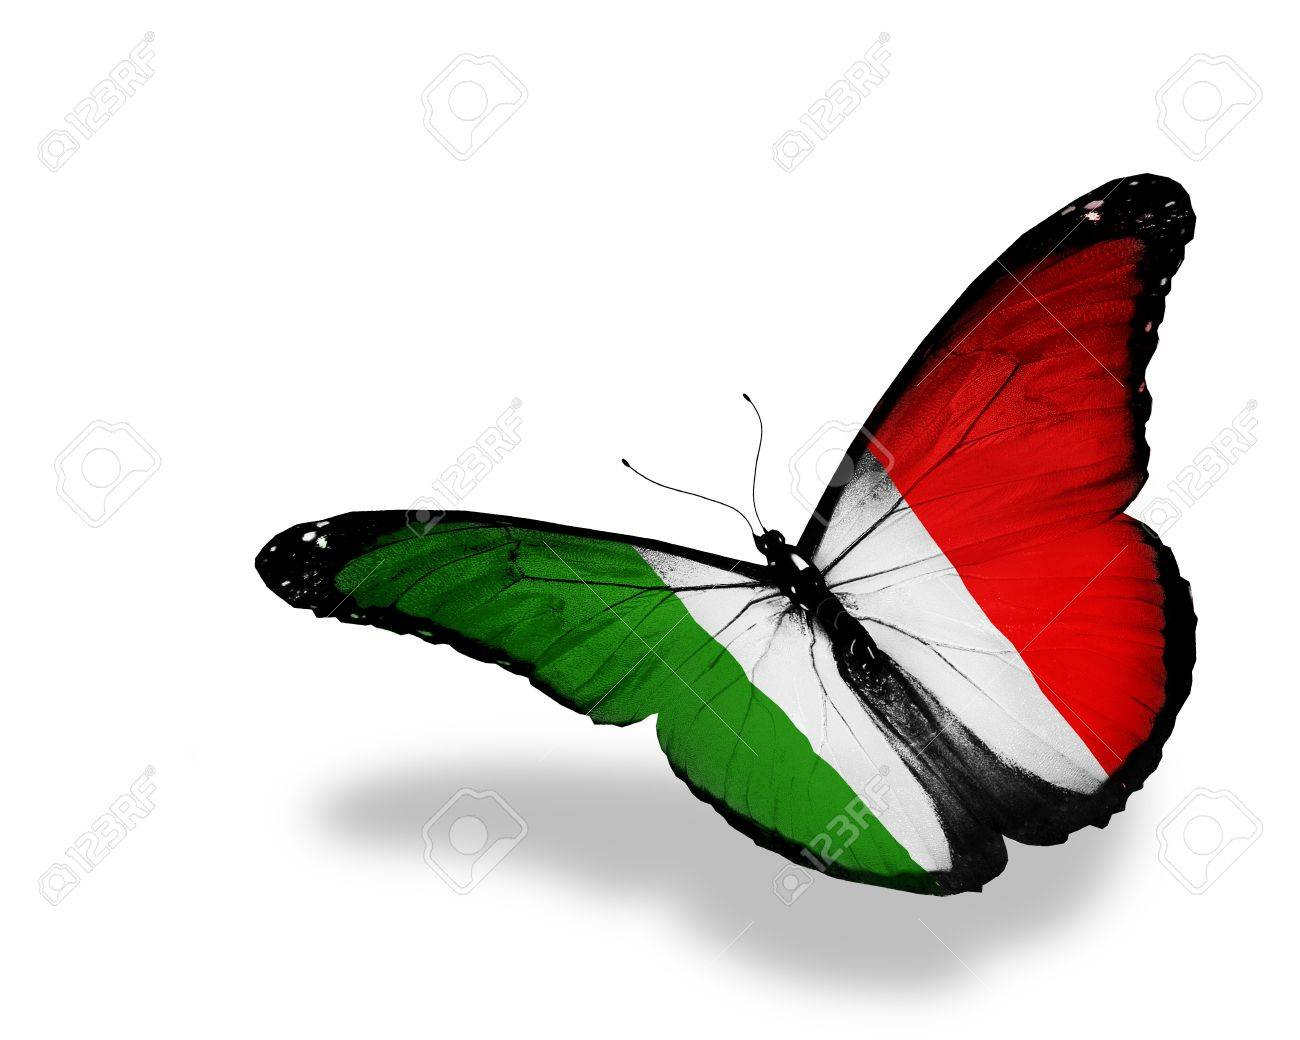 Italian flag butterfly flying, isolated on white background - 12874757